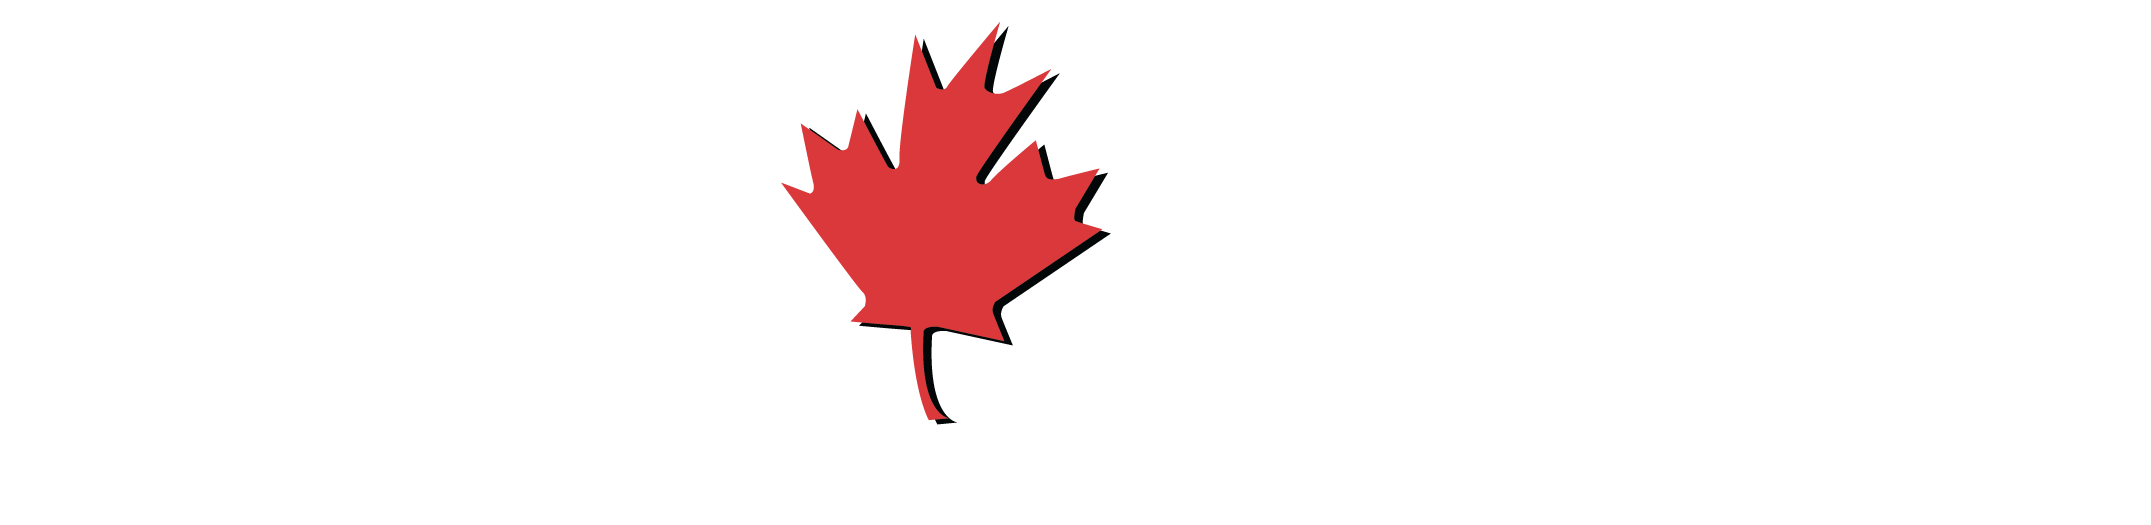 Canada's Founding Families™